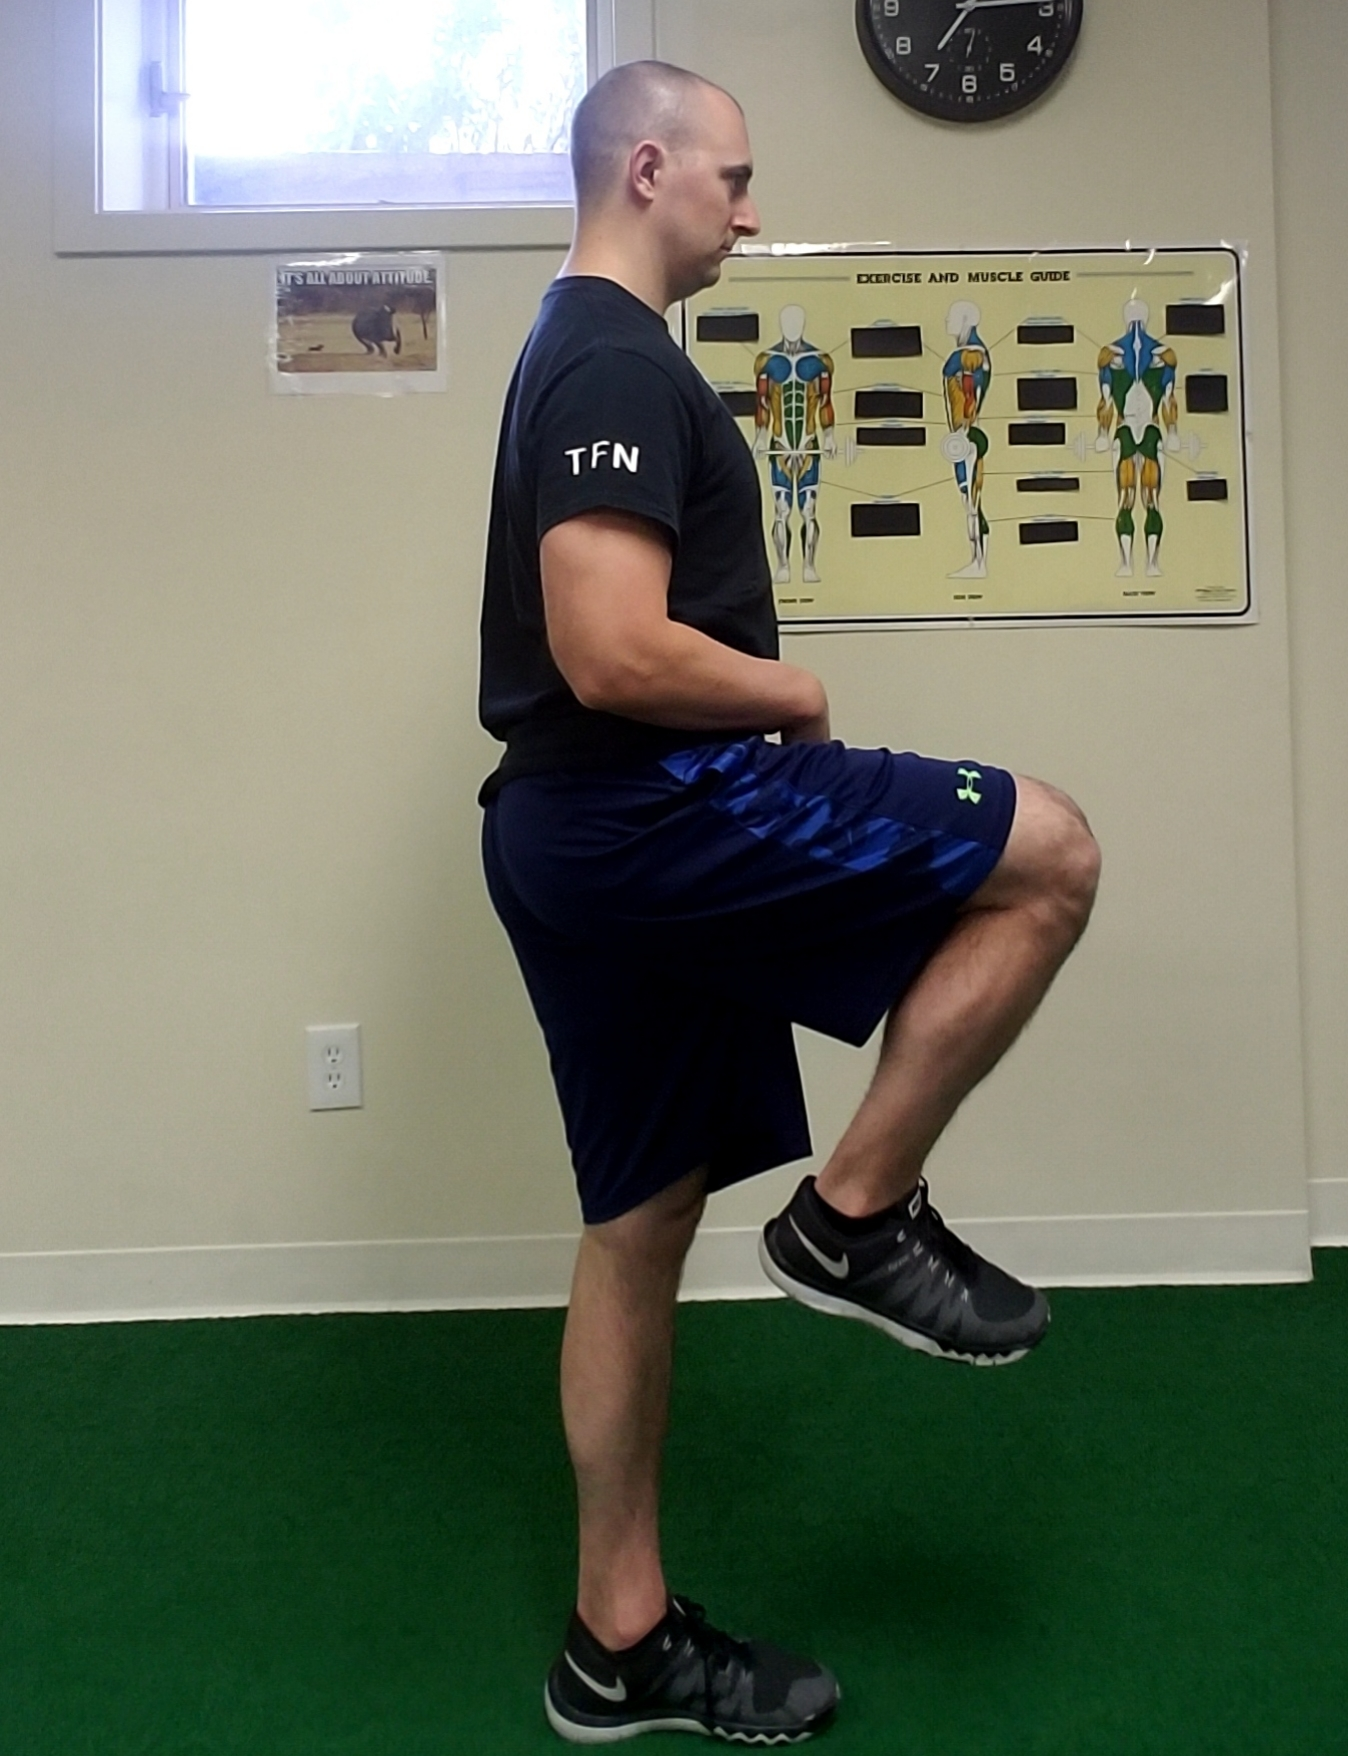 Figure 1.1   As shown in this photo, the spine is extended or arch indicating poor core position. When this occurs the hip cannot flex fully (~90 degrees shown here).